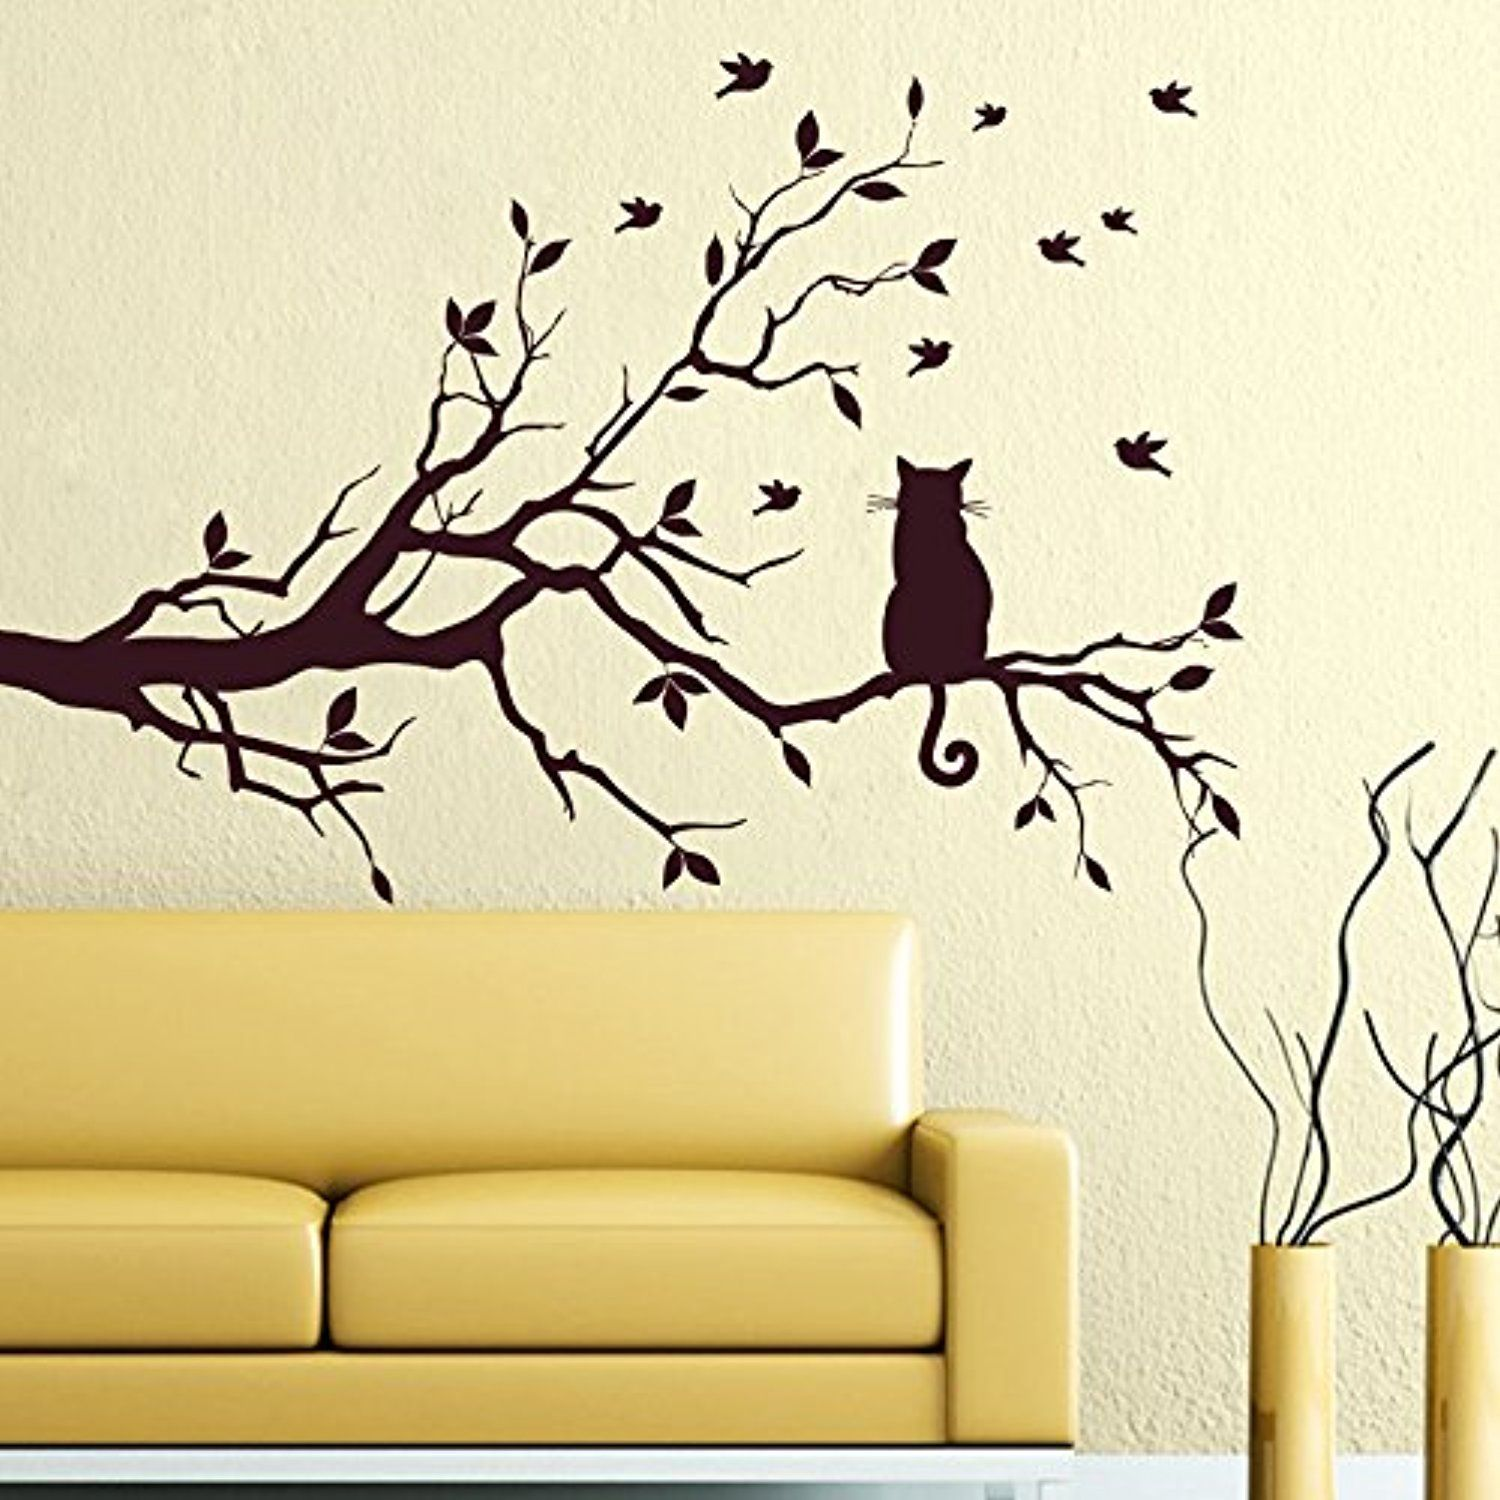 Excellent Twig Wall Art Pictures Inspiration - The Wall Art ...